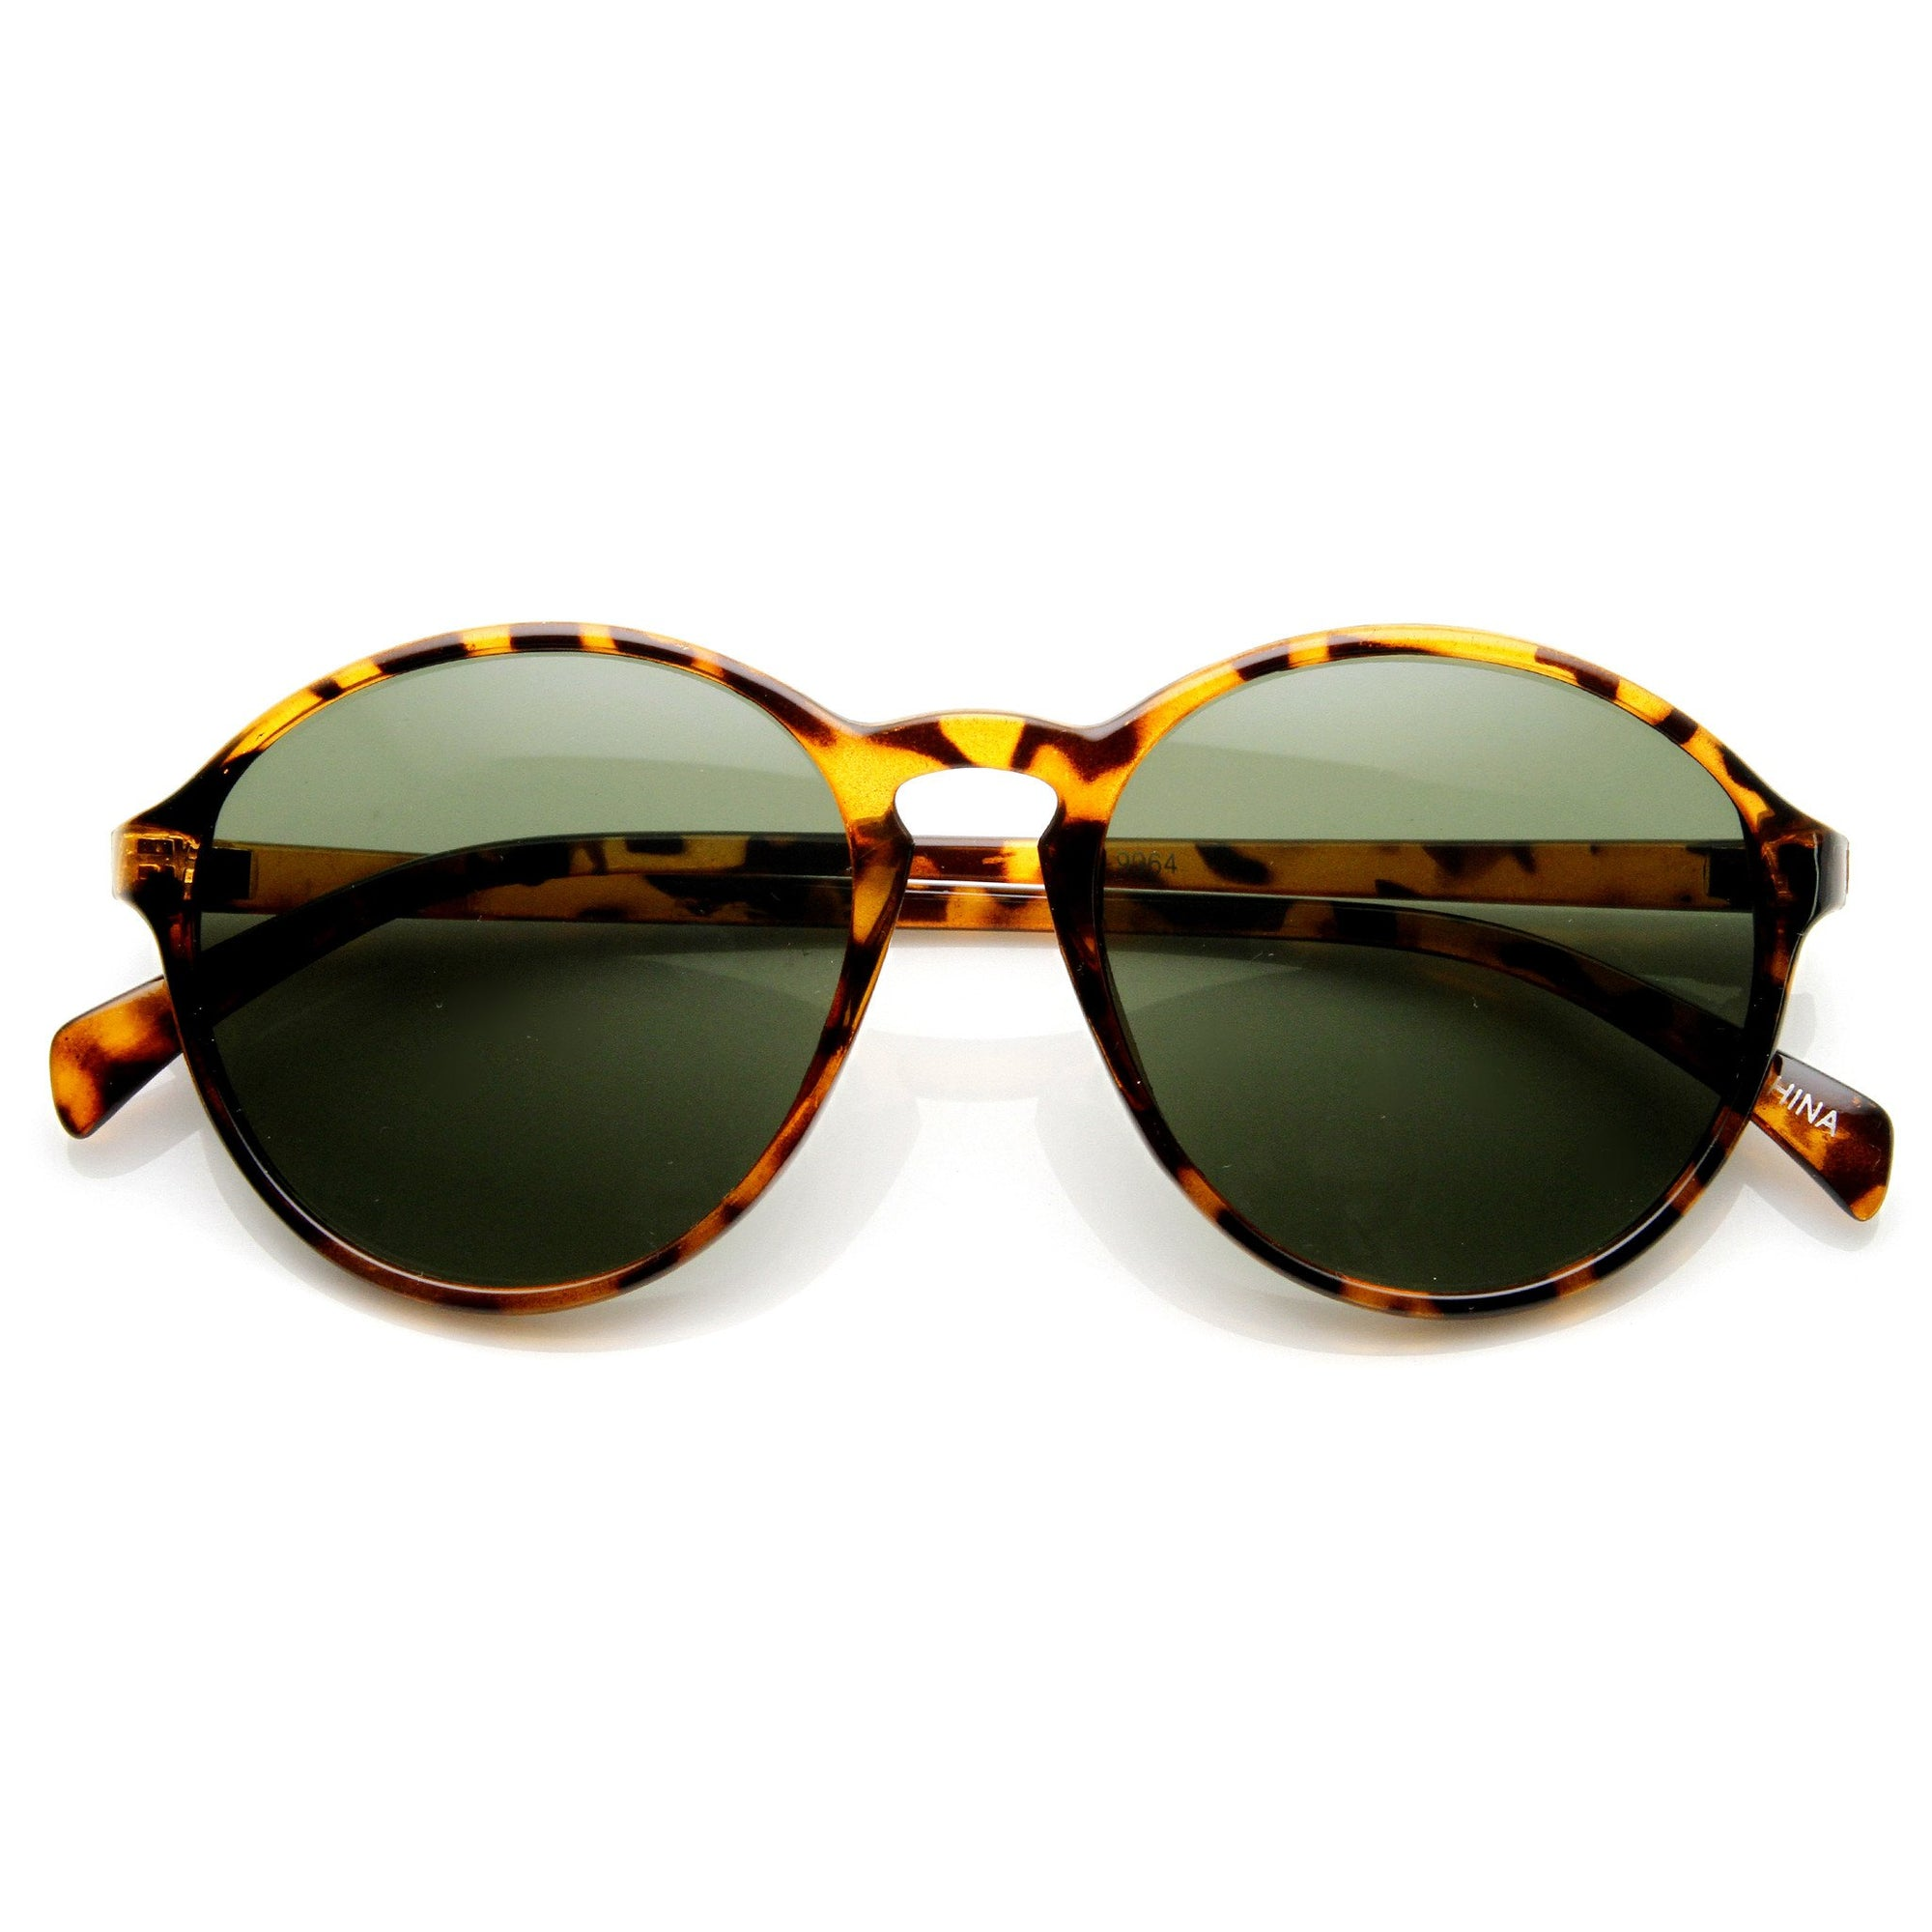 78aa80590d4 Dapper Vintage 1920 s Inspired Indie P3 Round Fashionable Sunglasses 9175